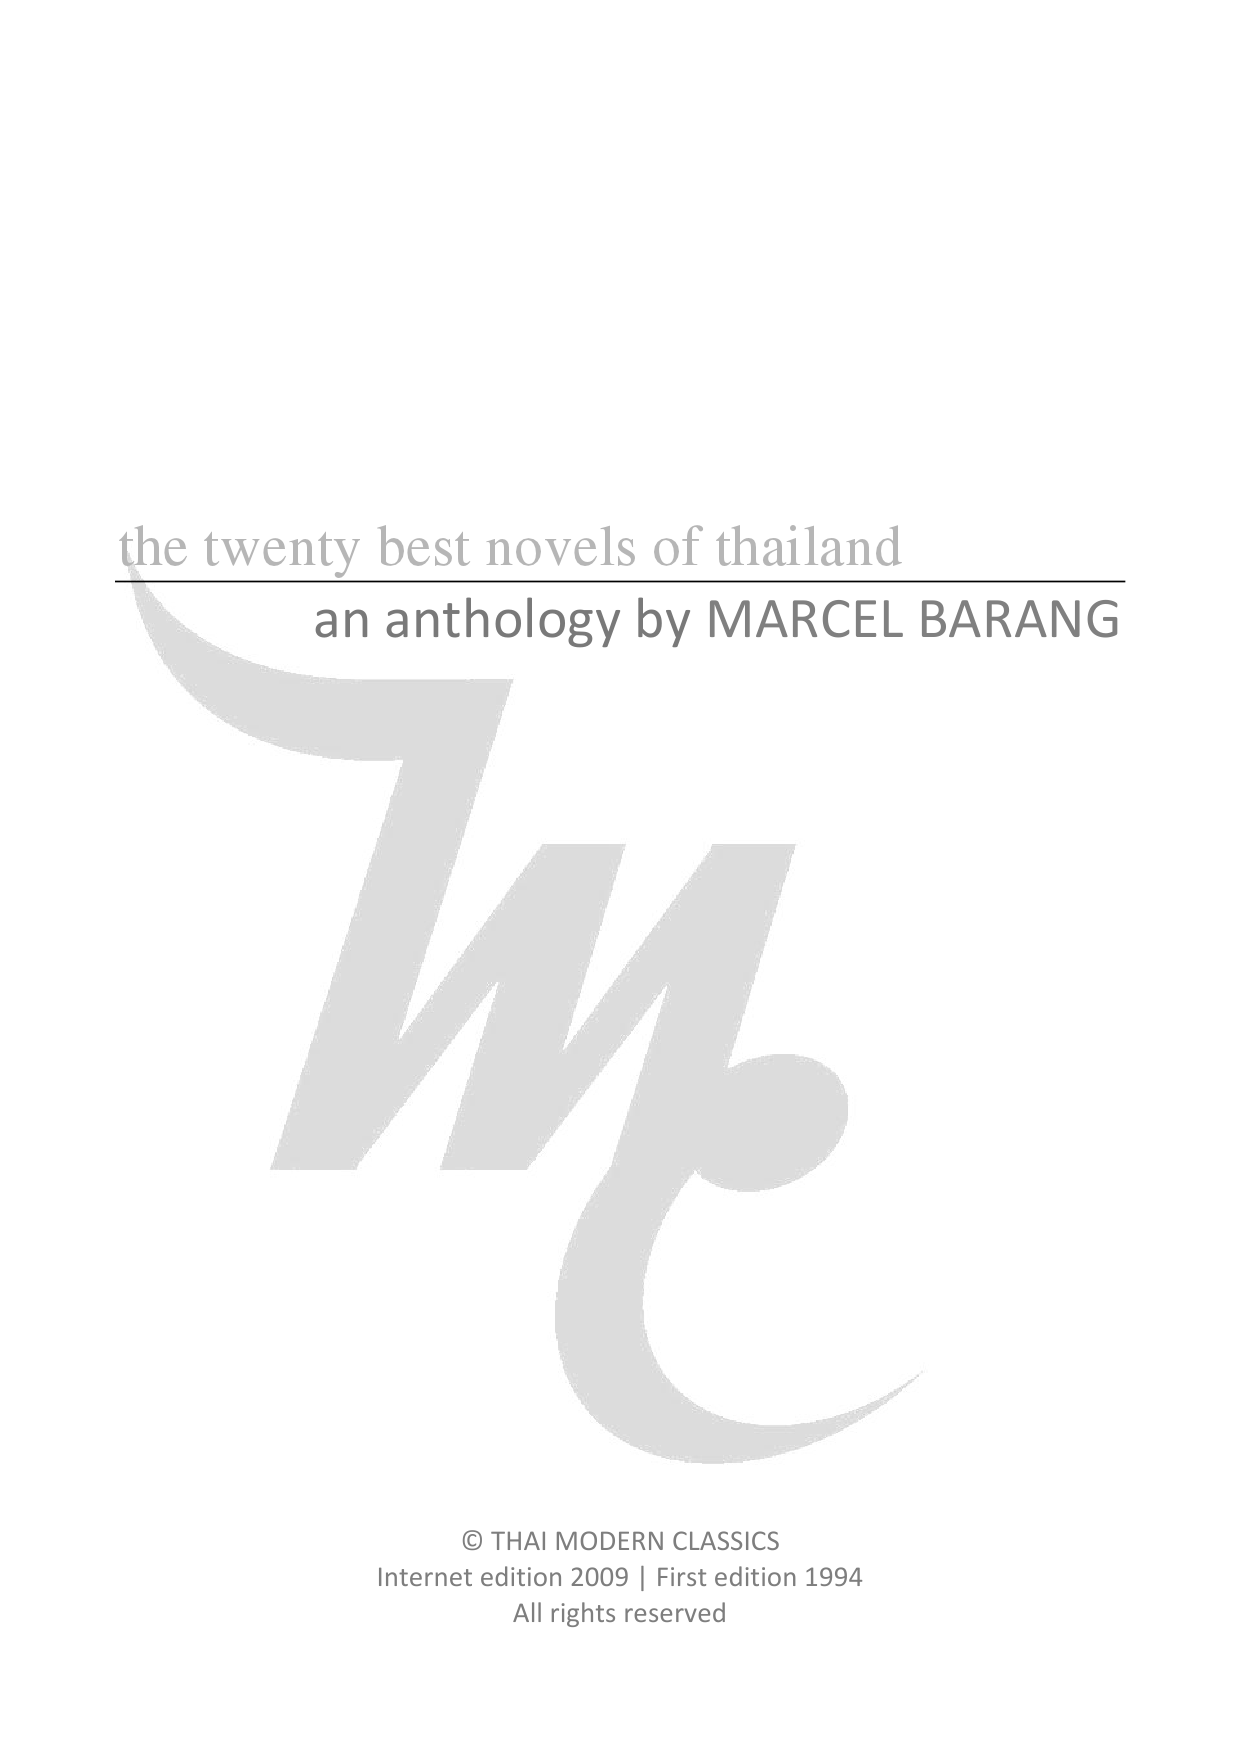 The 20 best novels of thailand